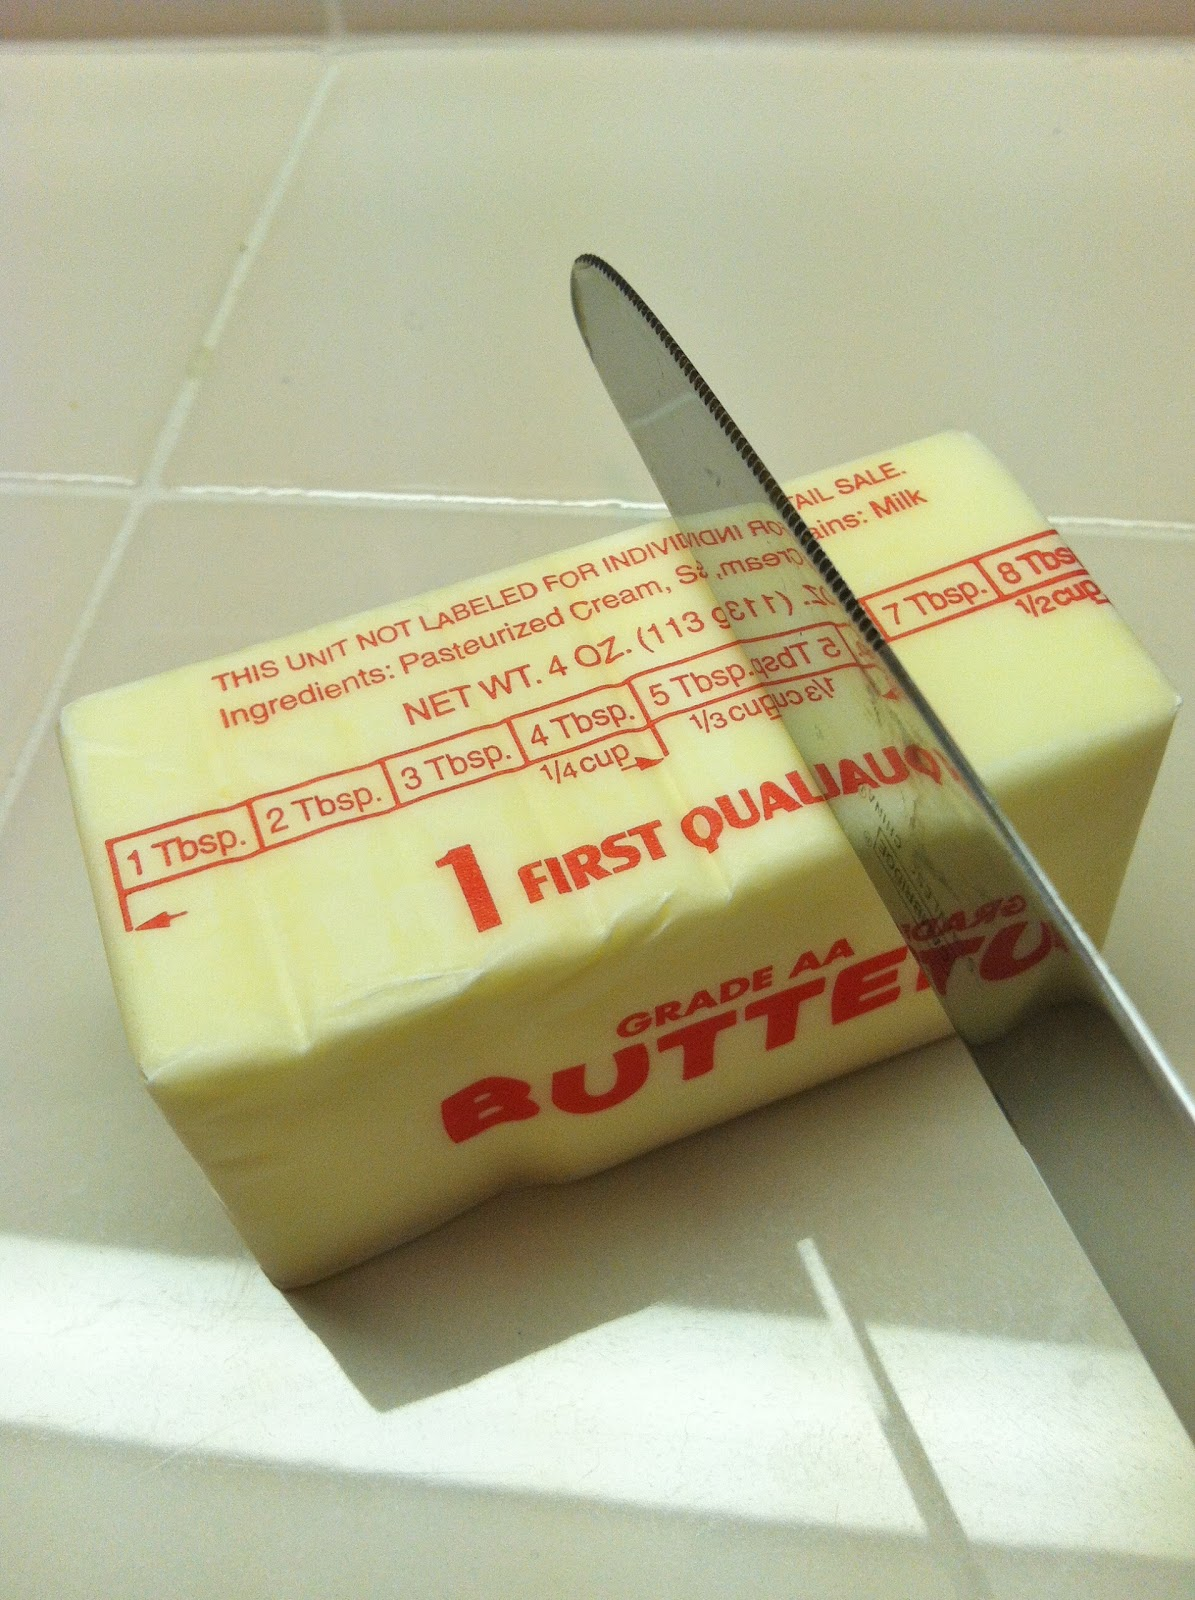 Stick of butter measurement